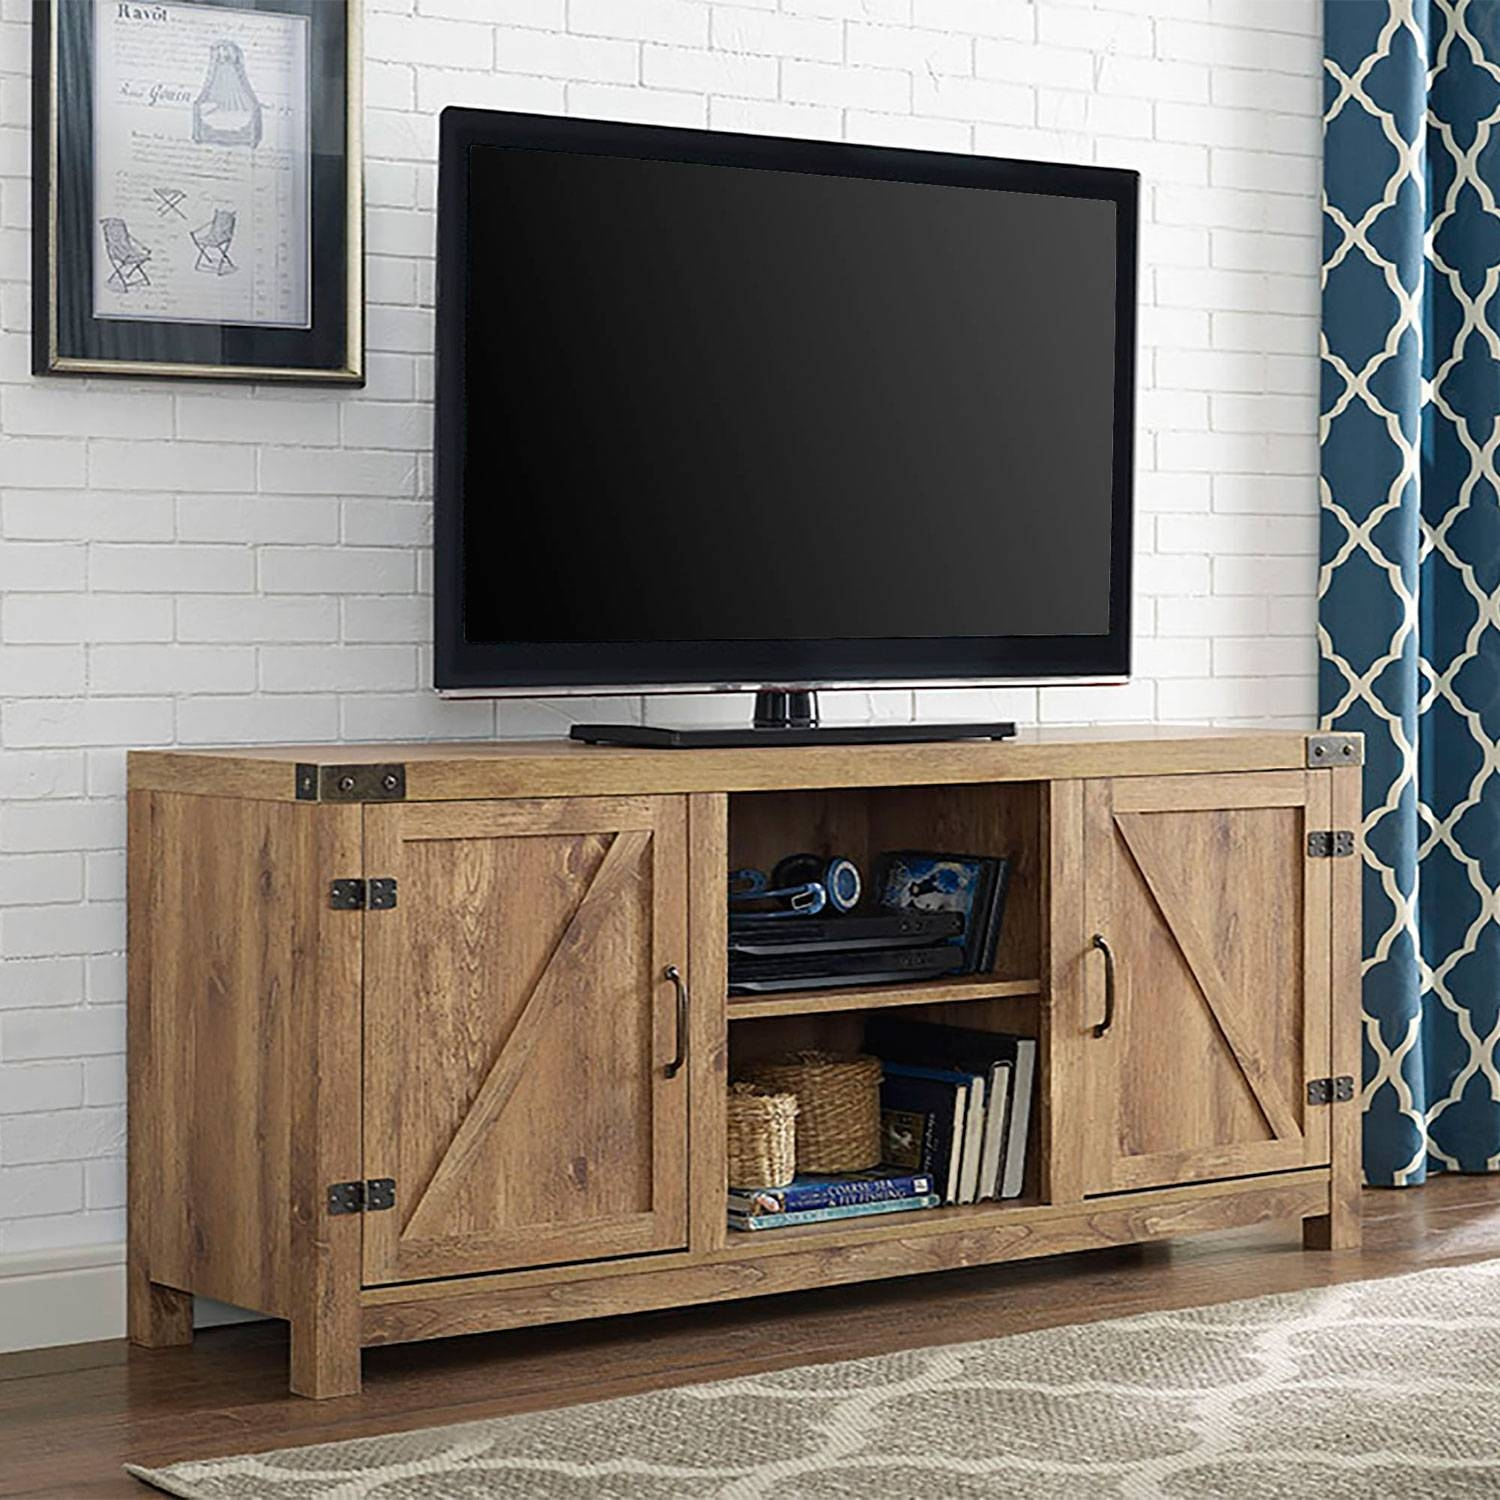 Tv Stands & Cabinets On Sale | Bellacor regarding Sleek Tv Stands (Image 13 of 15)